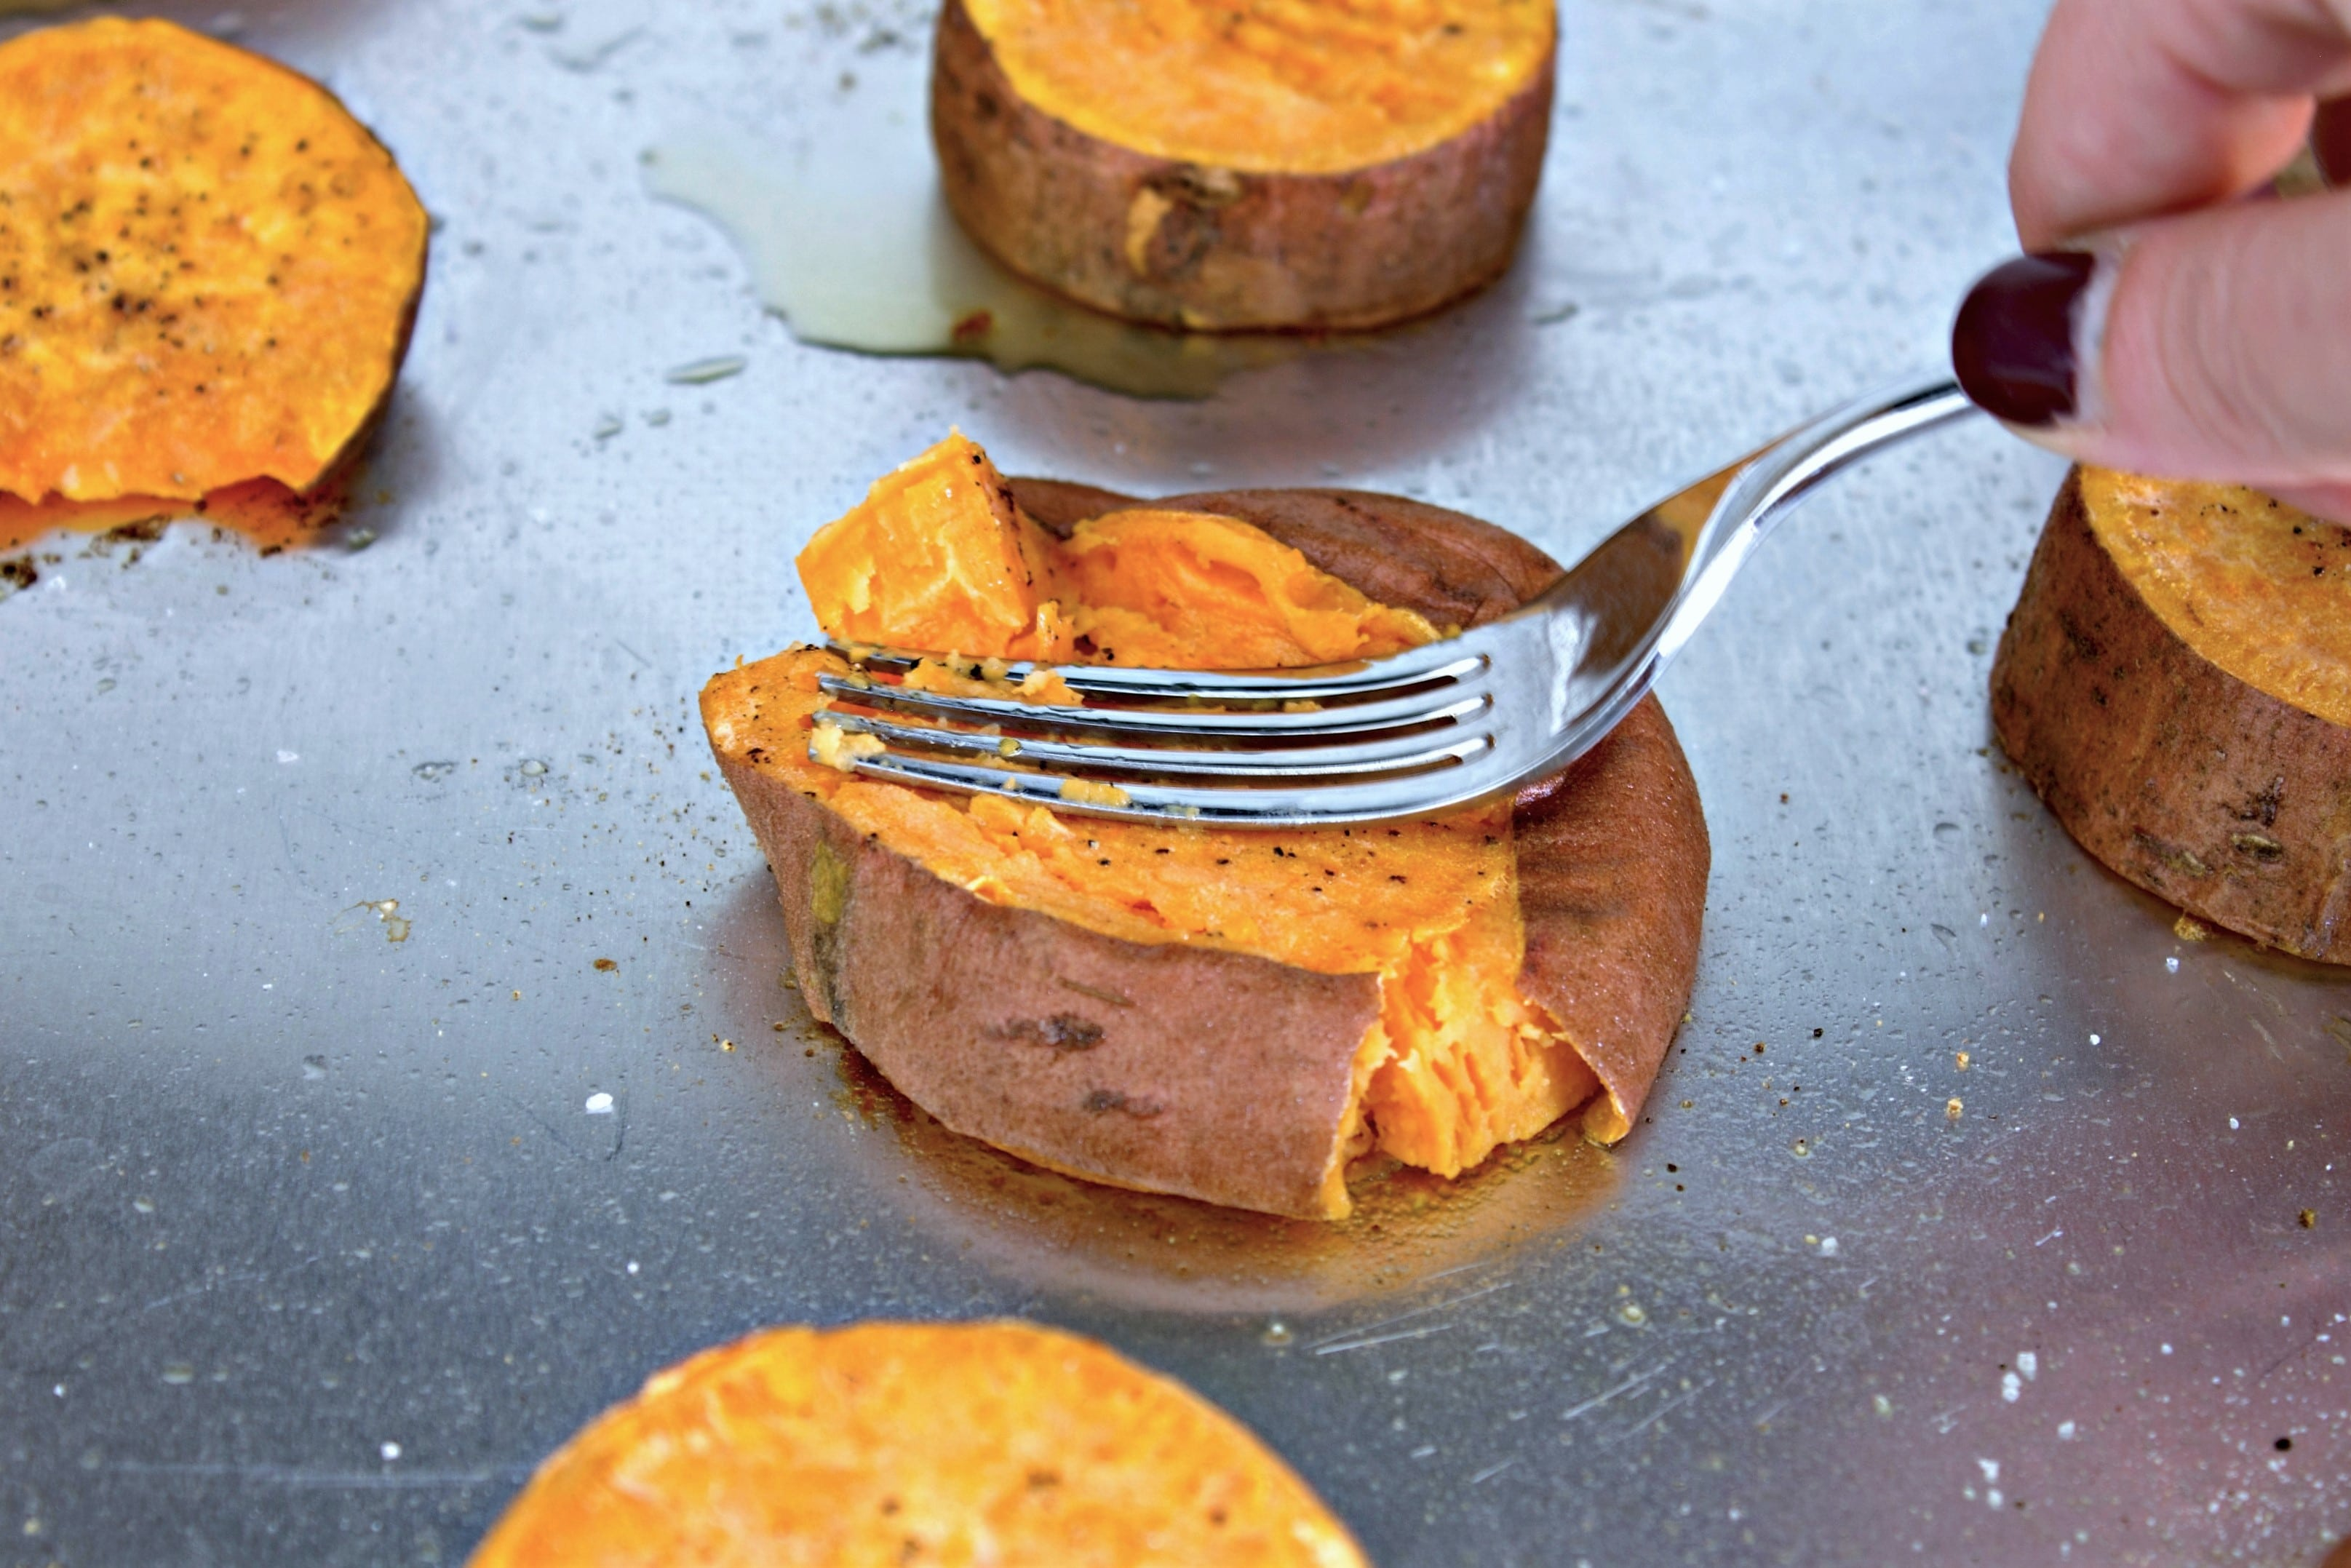 Smashing Sweet Potato Slices With A Fork